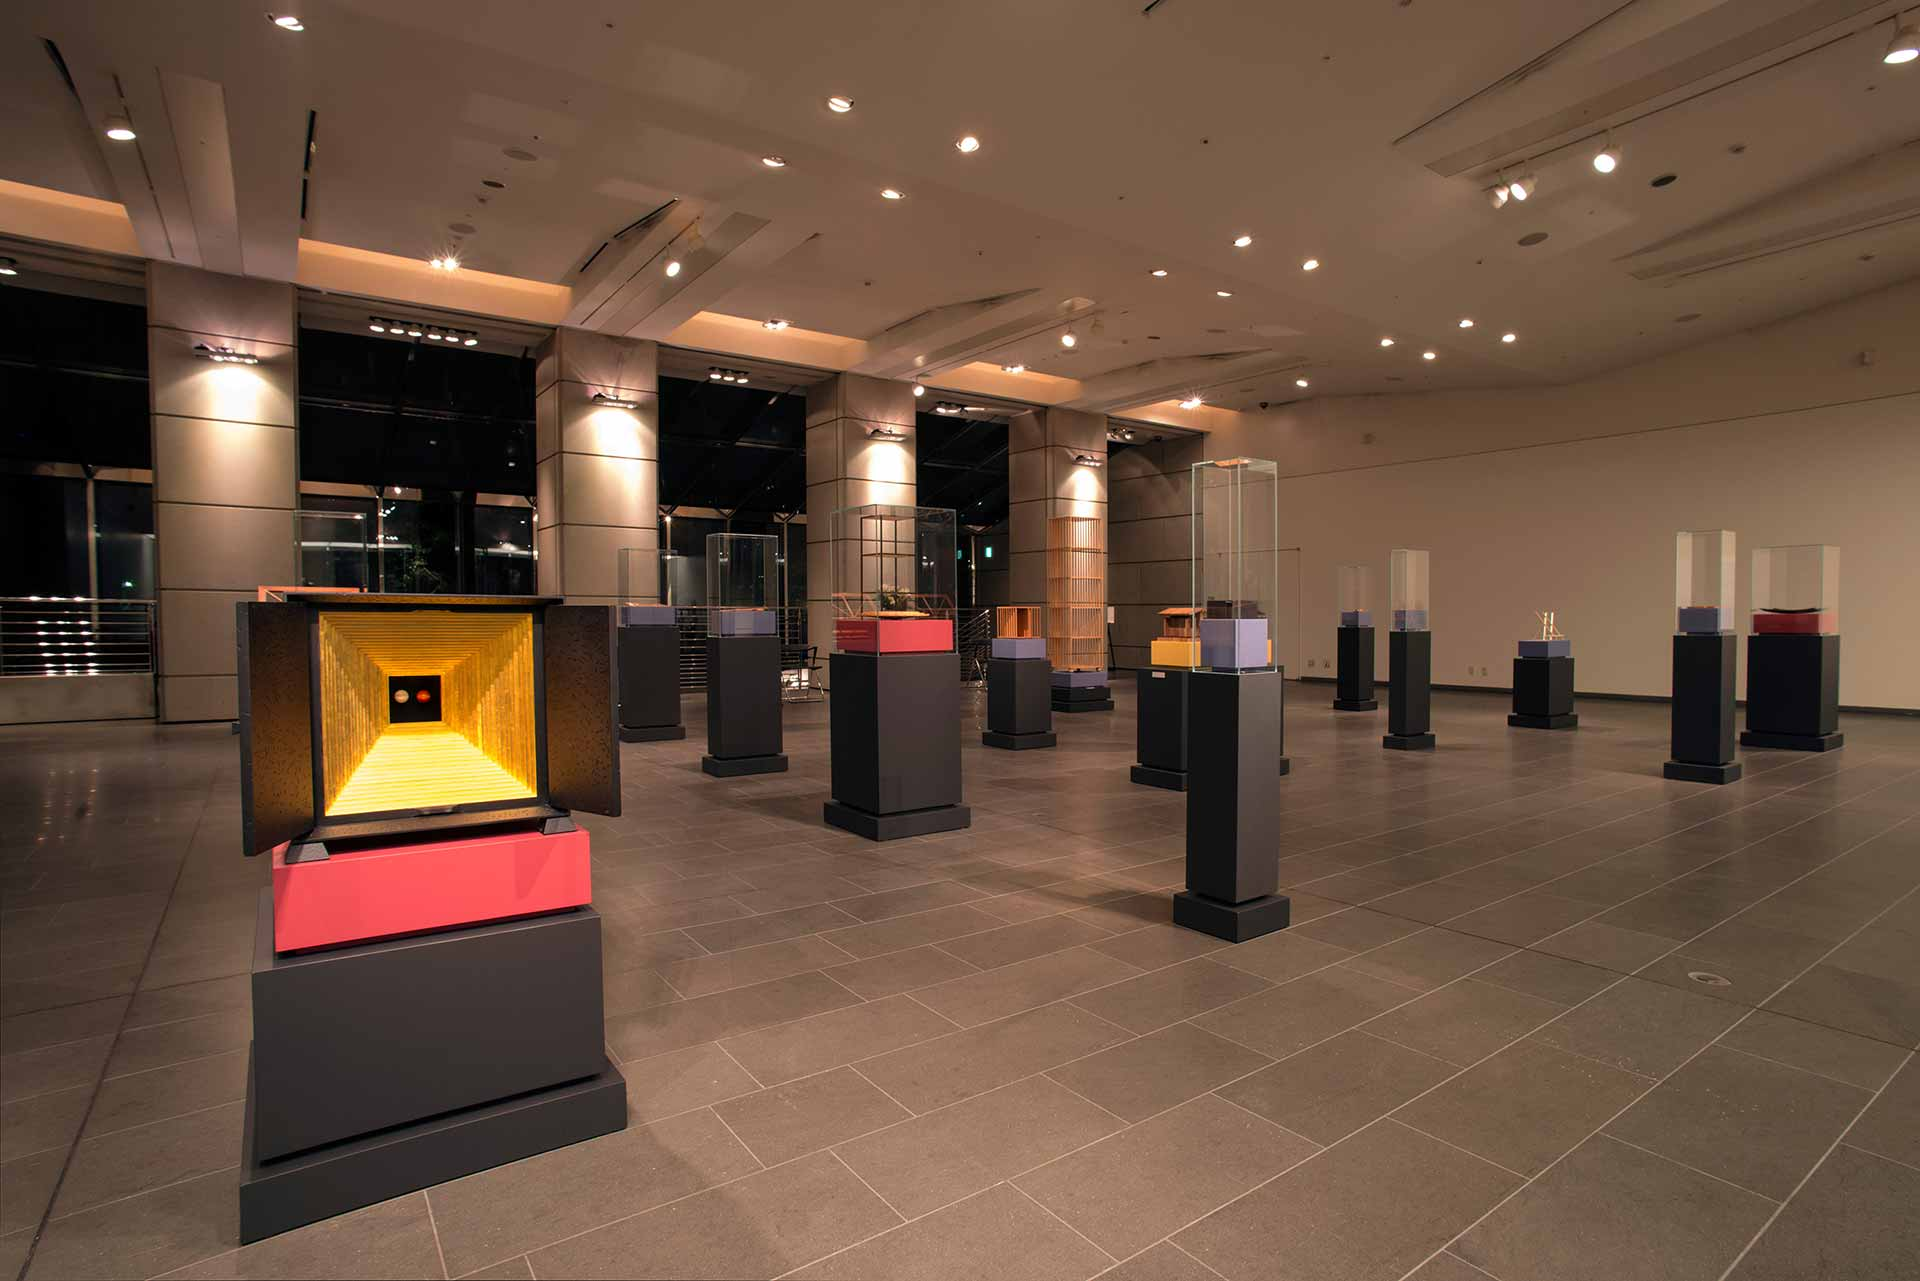 Exhibition 'Carpenrty between Italy and Japan' Bottega Ghianda and Hinoki Kogei